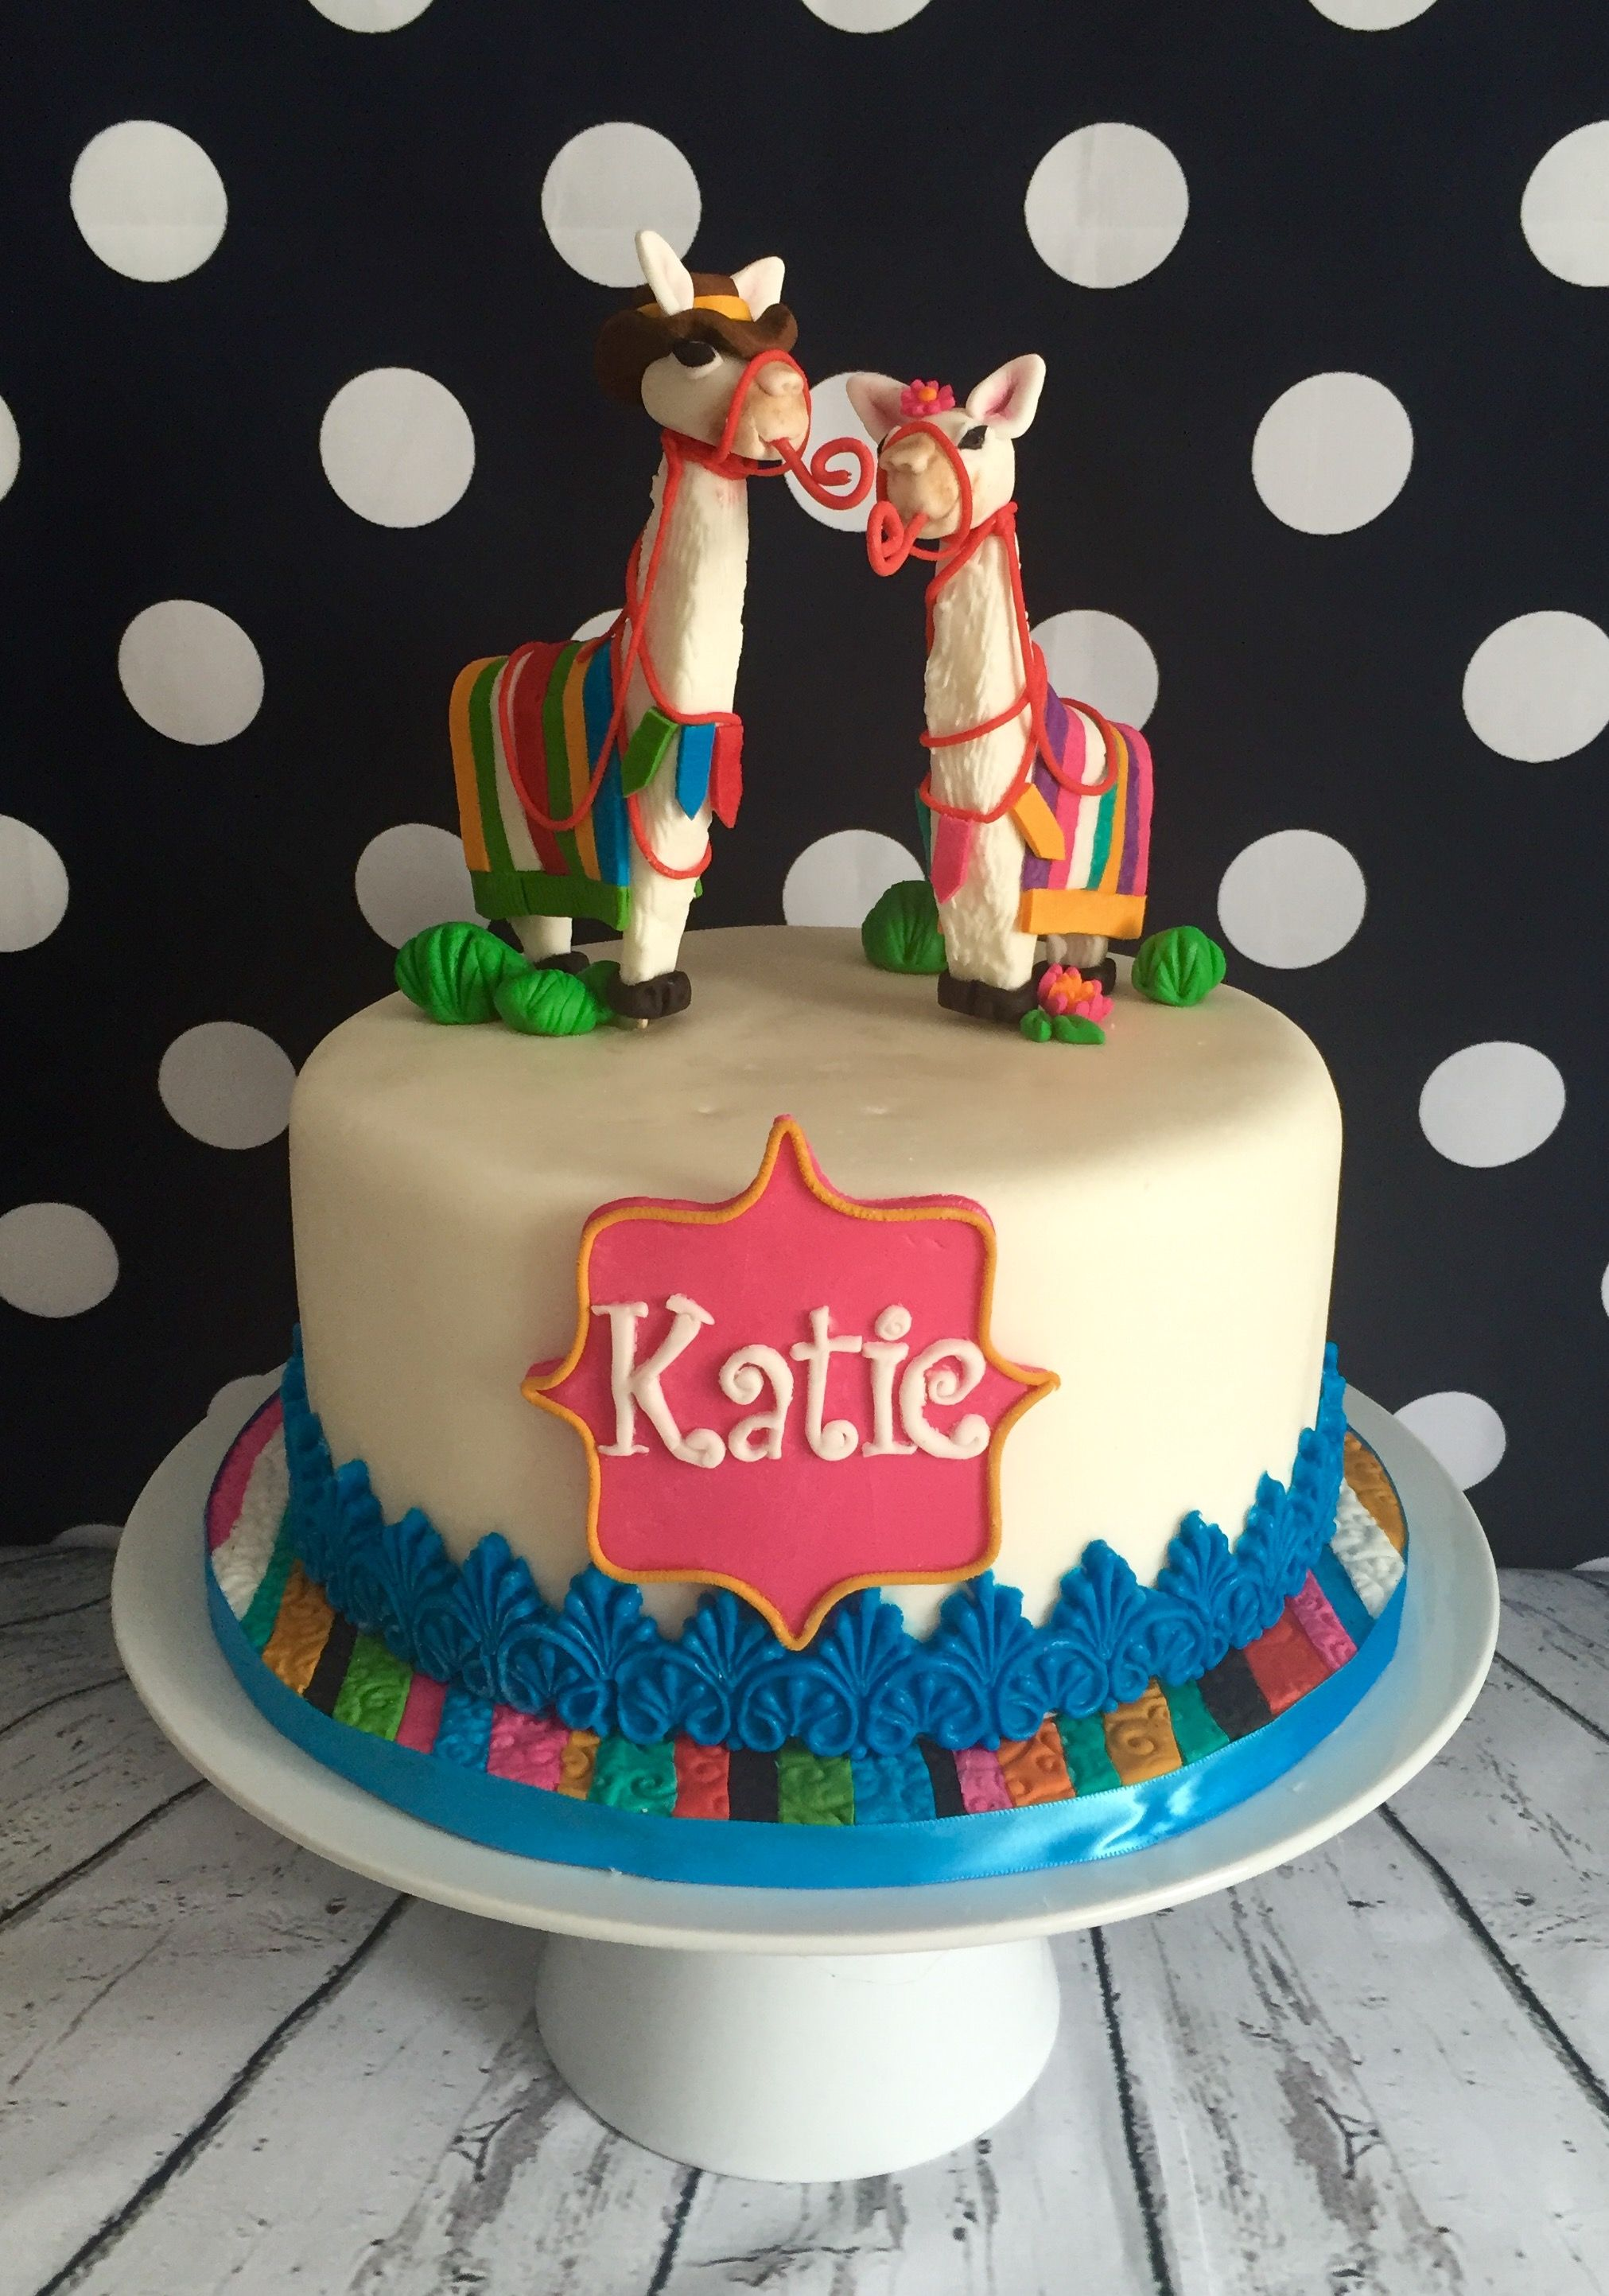 Cake decorating programs toronto for Kuchen design programm